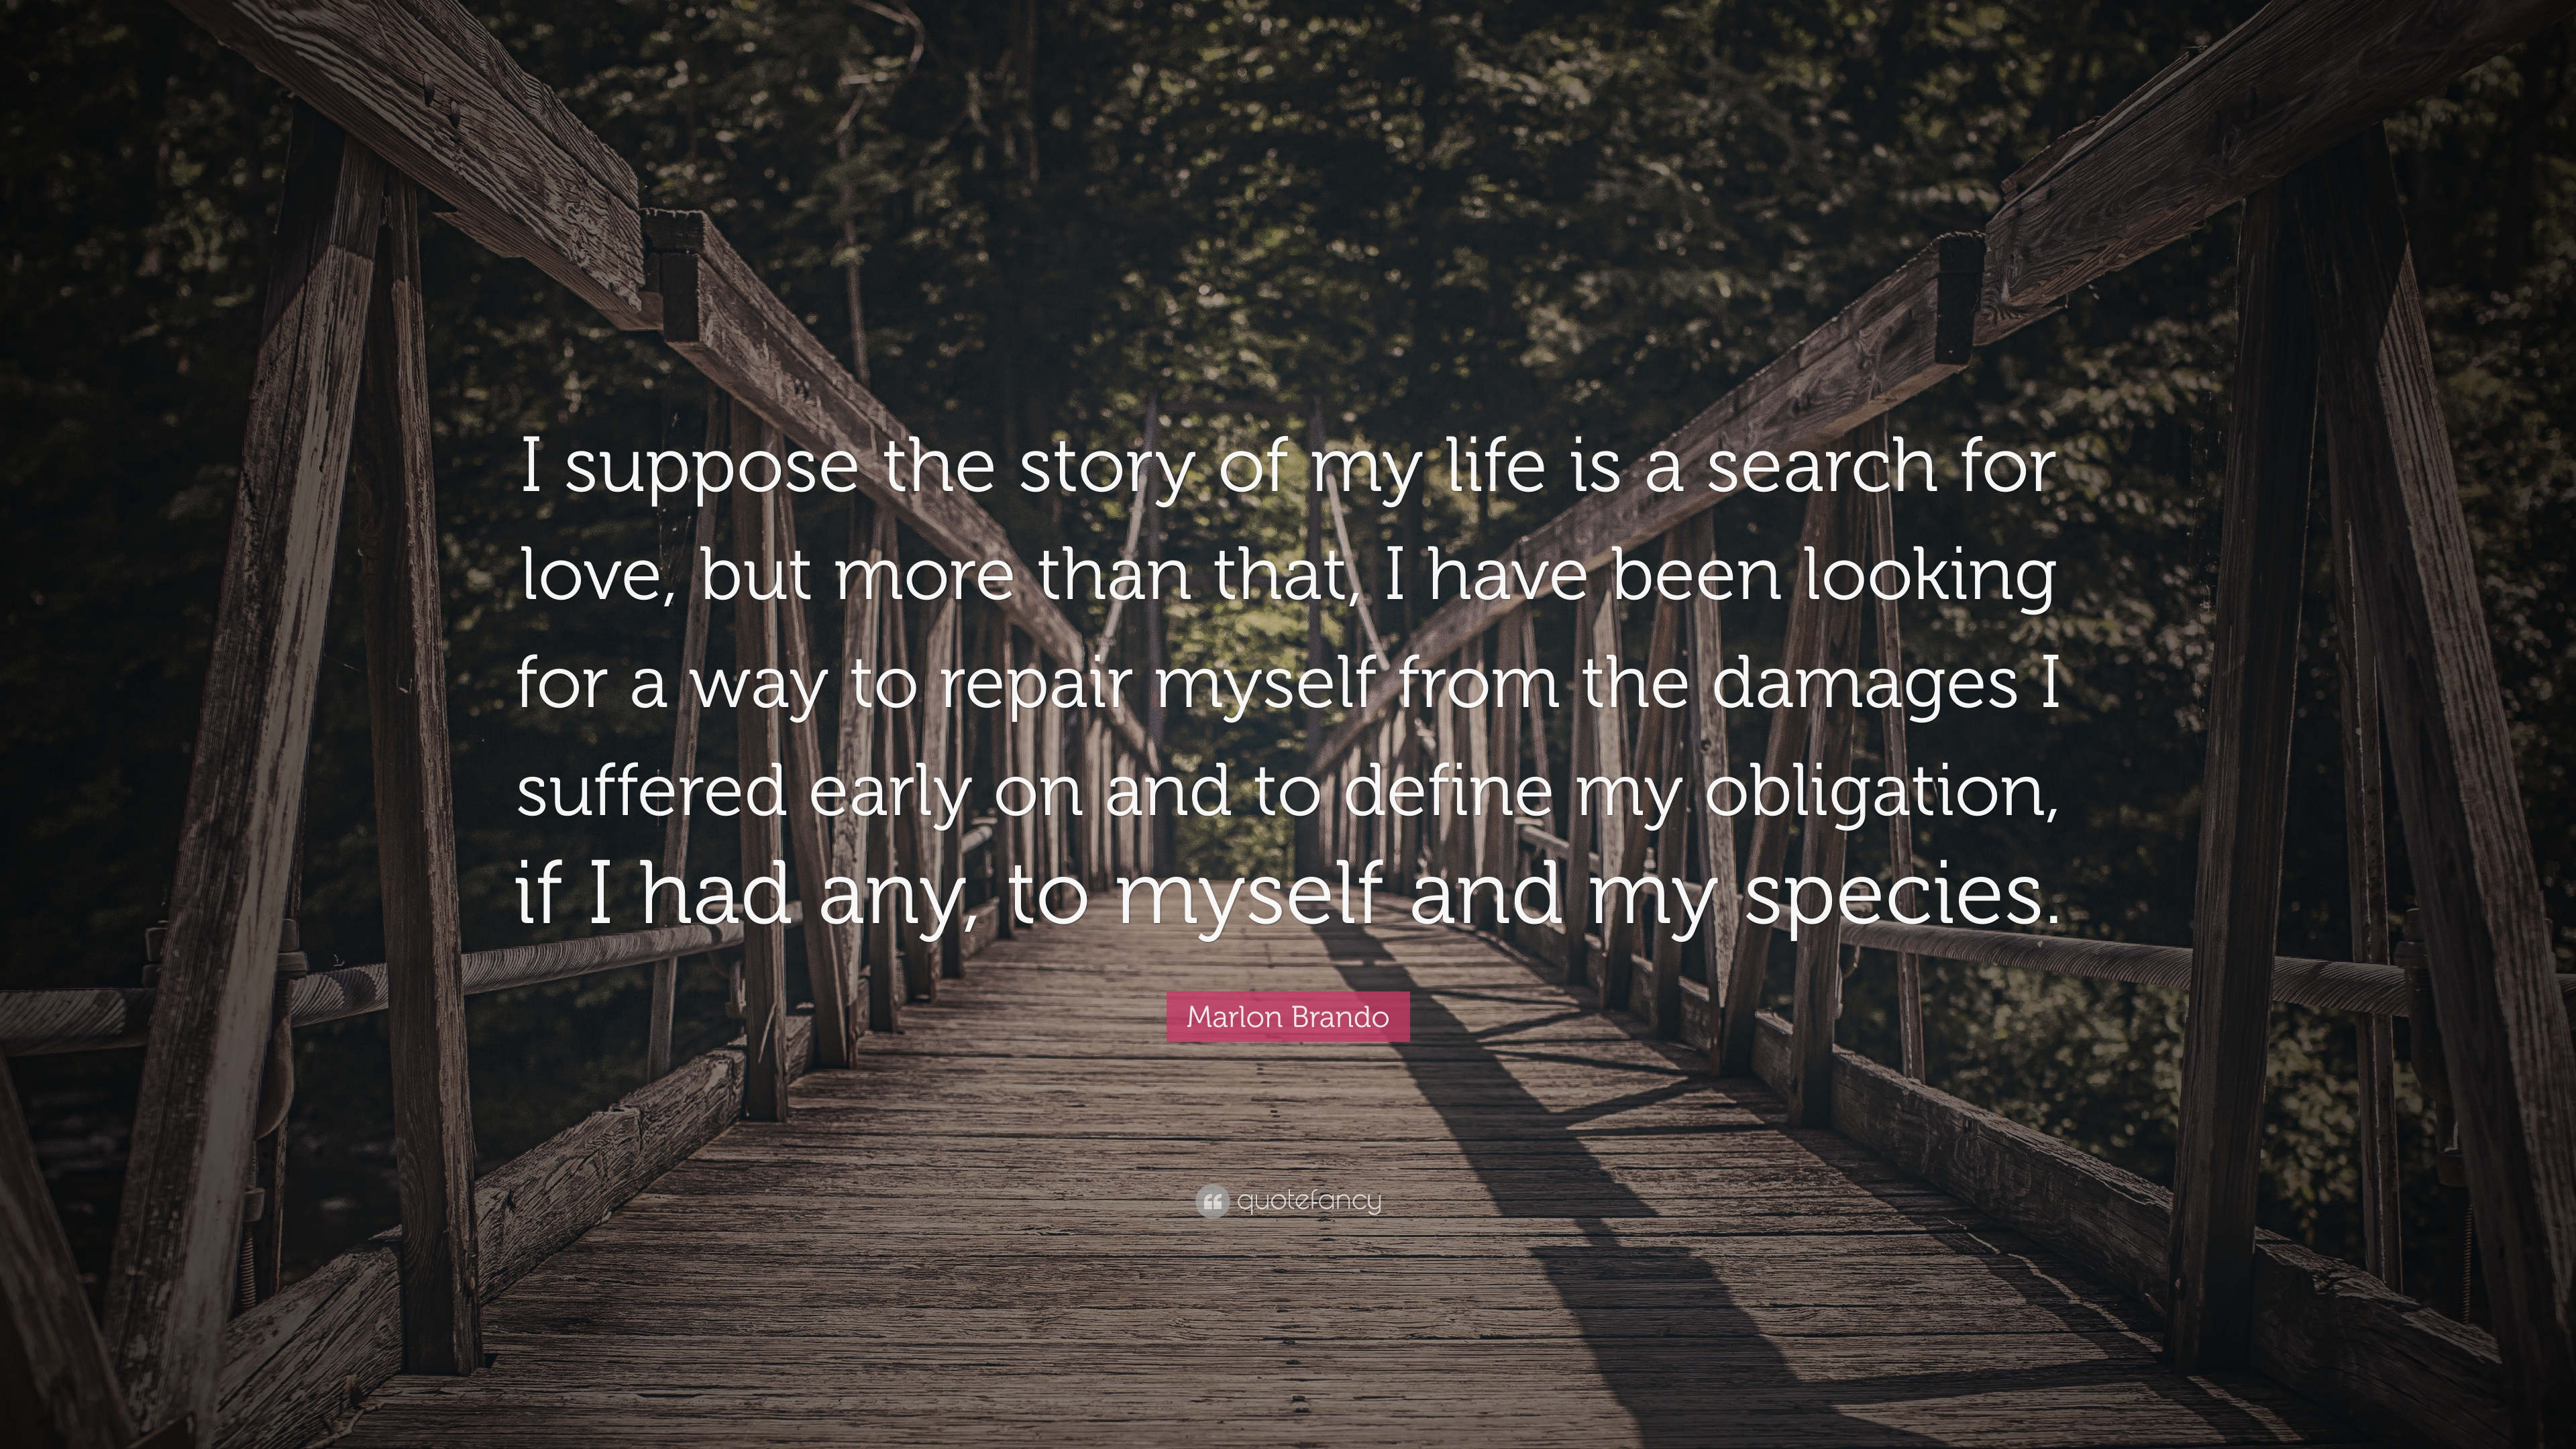 marlon brando quote i suppose the story of my life is a search for